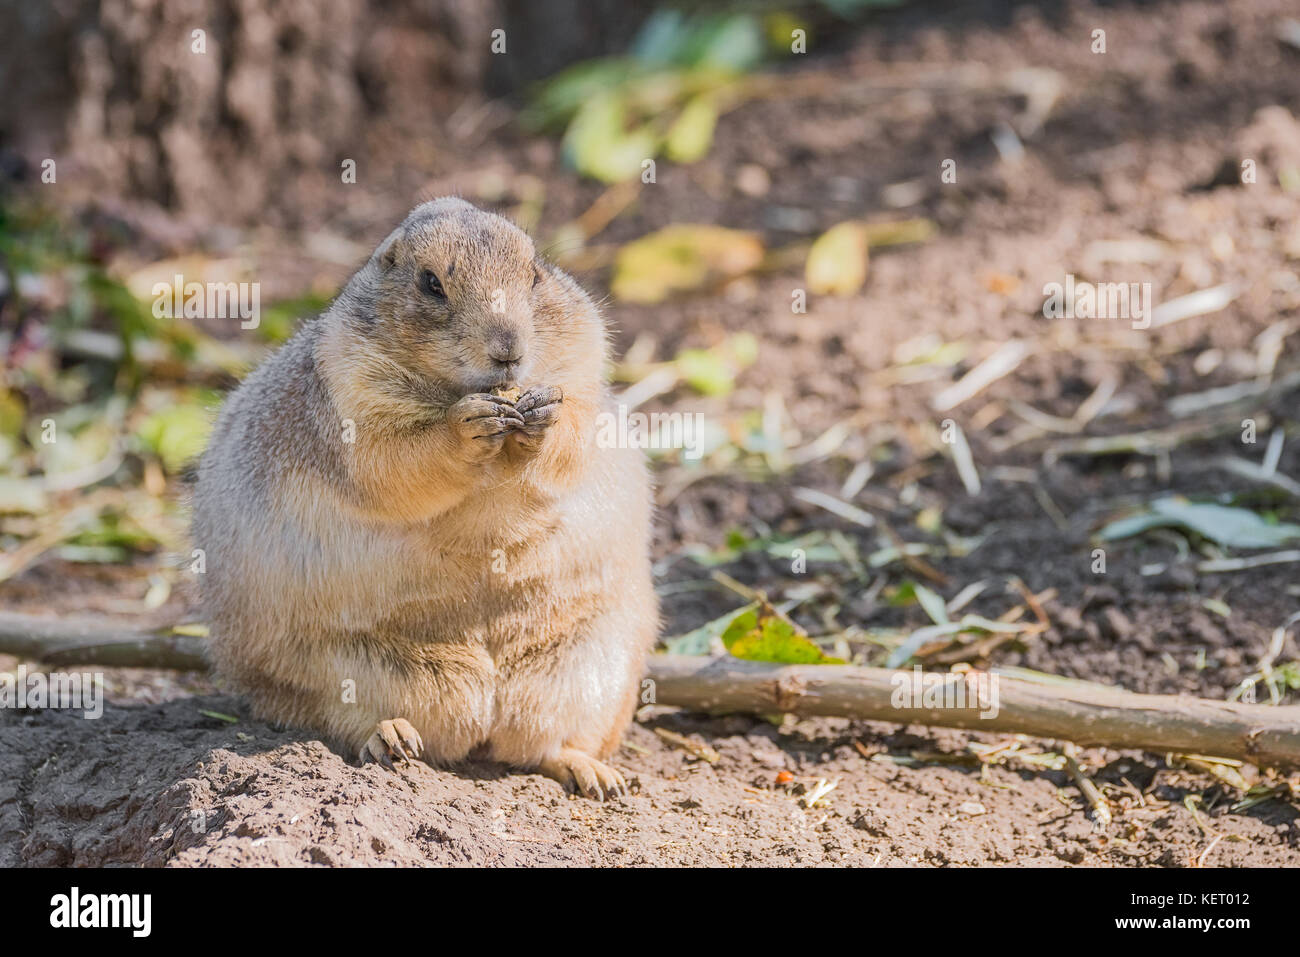 Gopher sitting up and eating - Stock Image